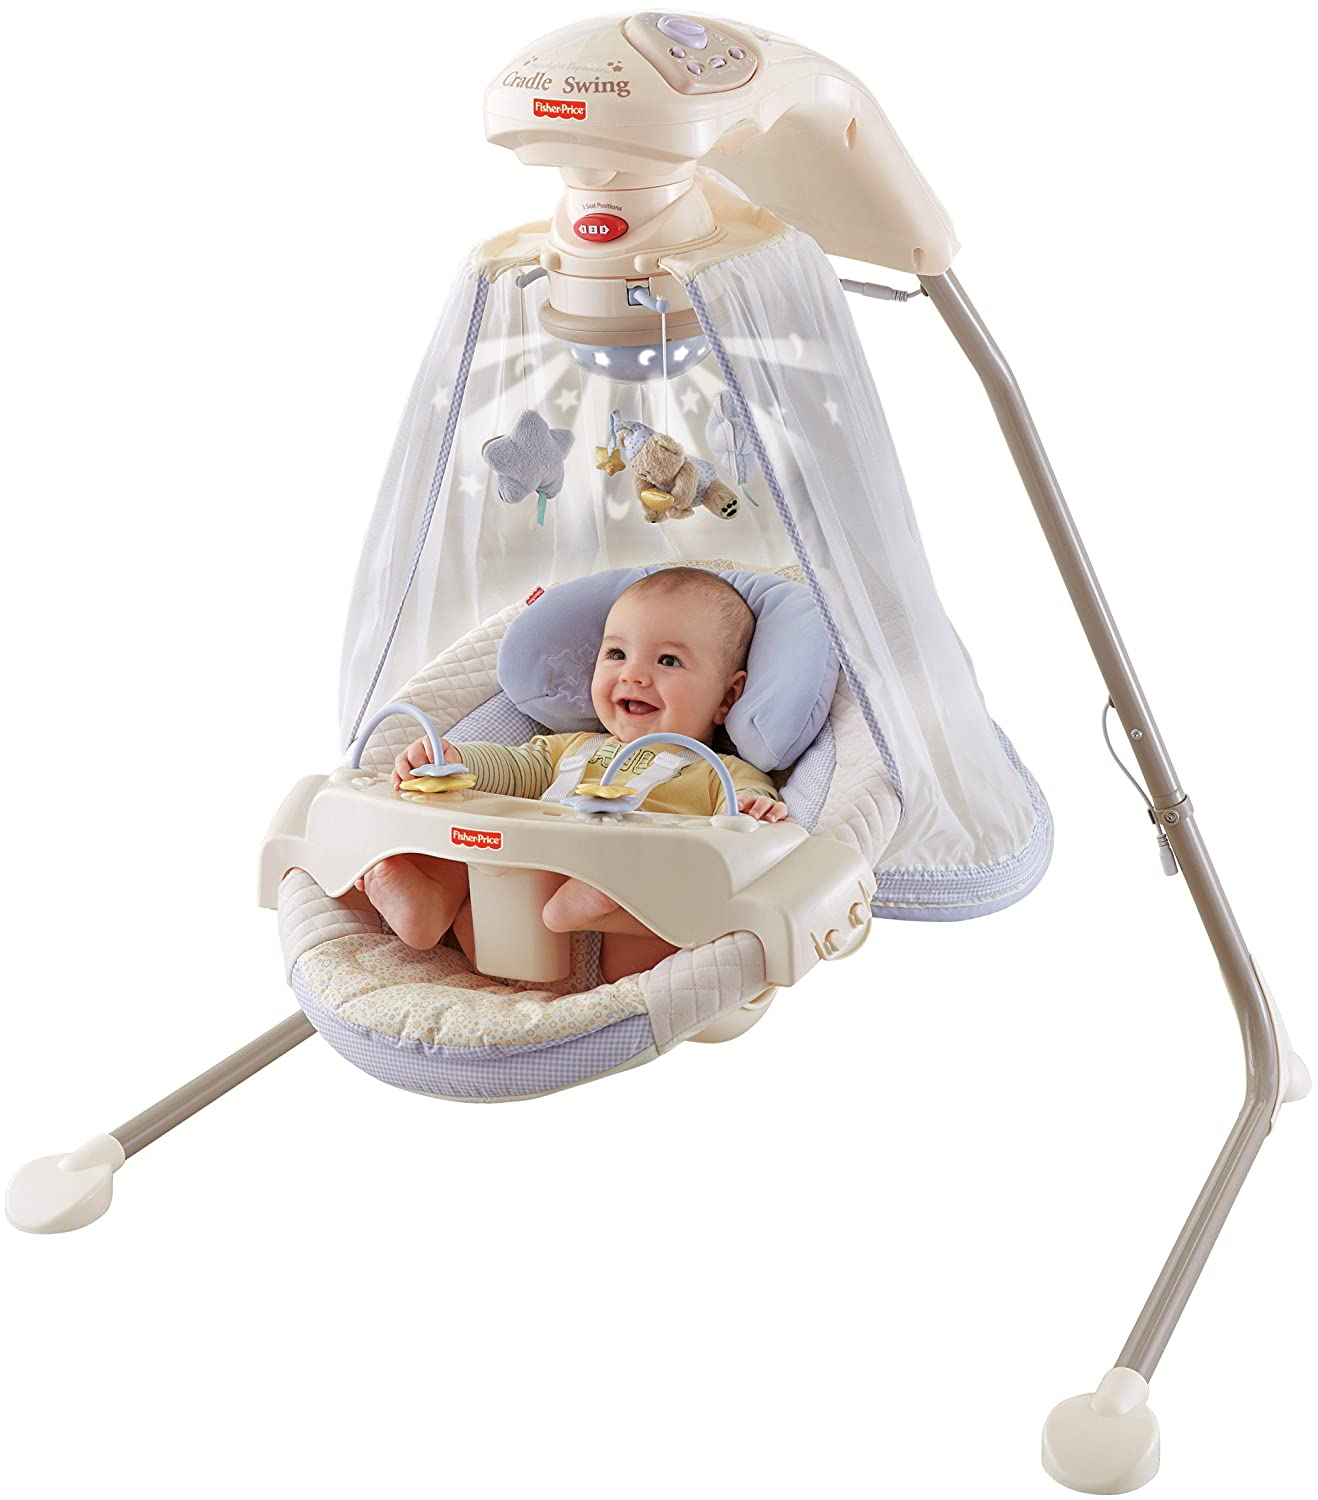 9 Best Fisher-Price Baby Swings Reviews of 2021 11